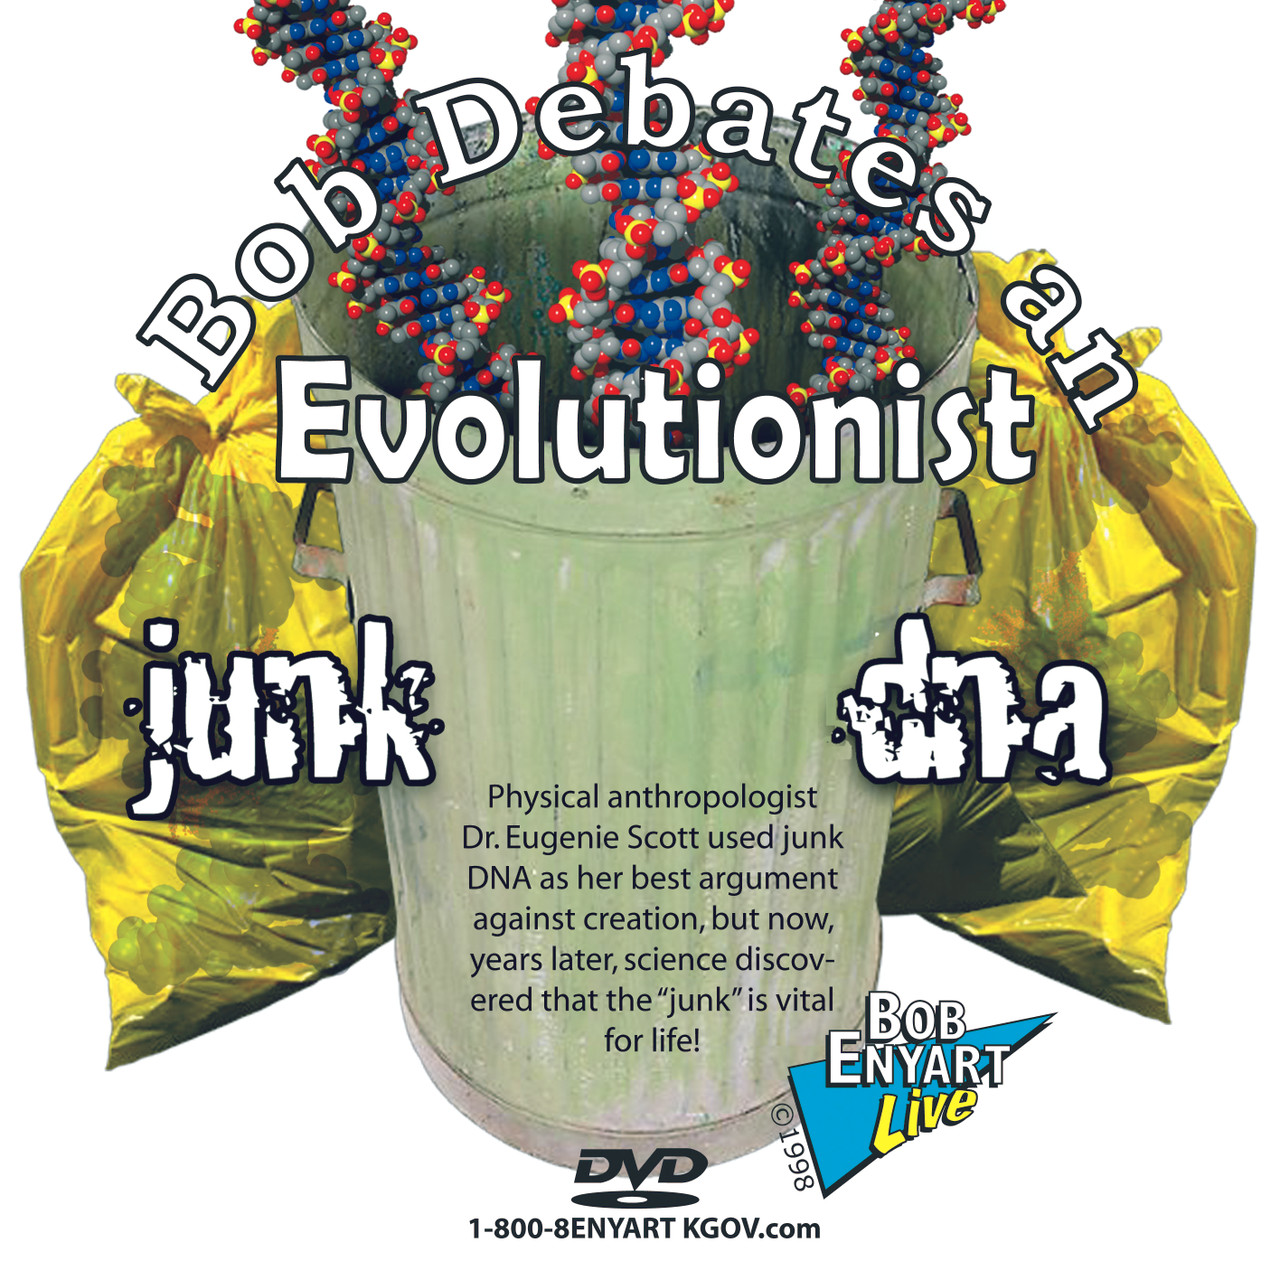 DVD of creationist Bob Enyart debating Eugenie Scott, Ph.D. on evolution and junk DNA